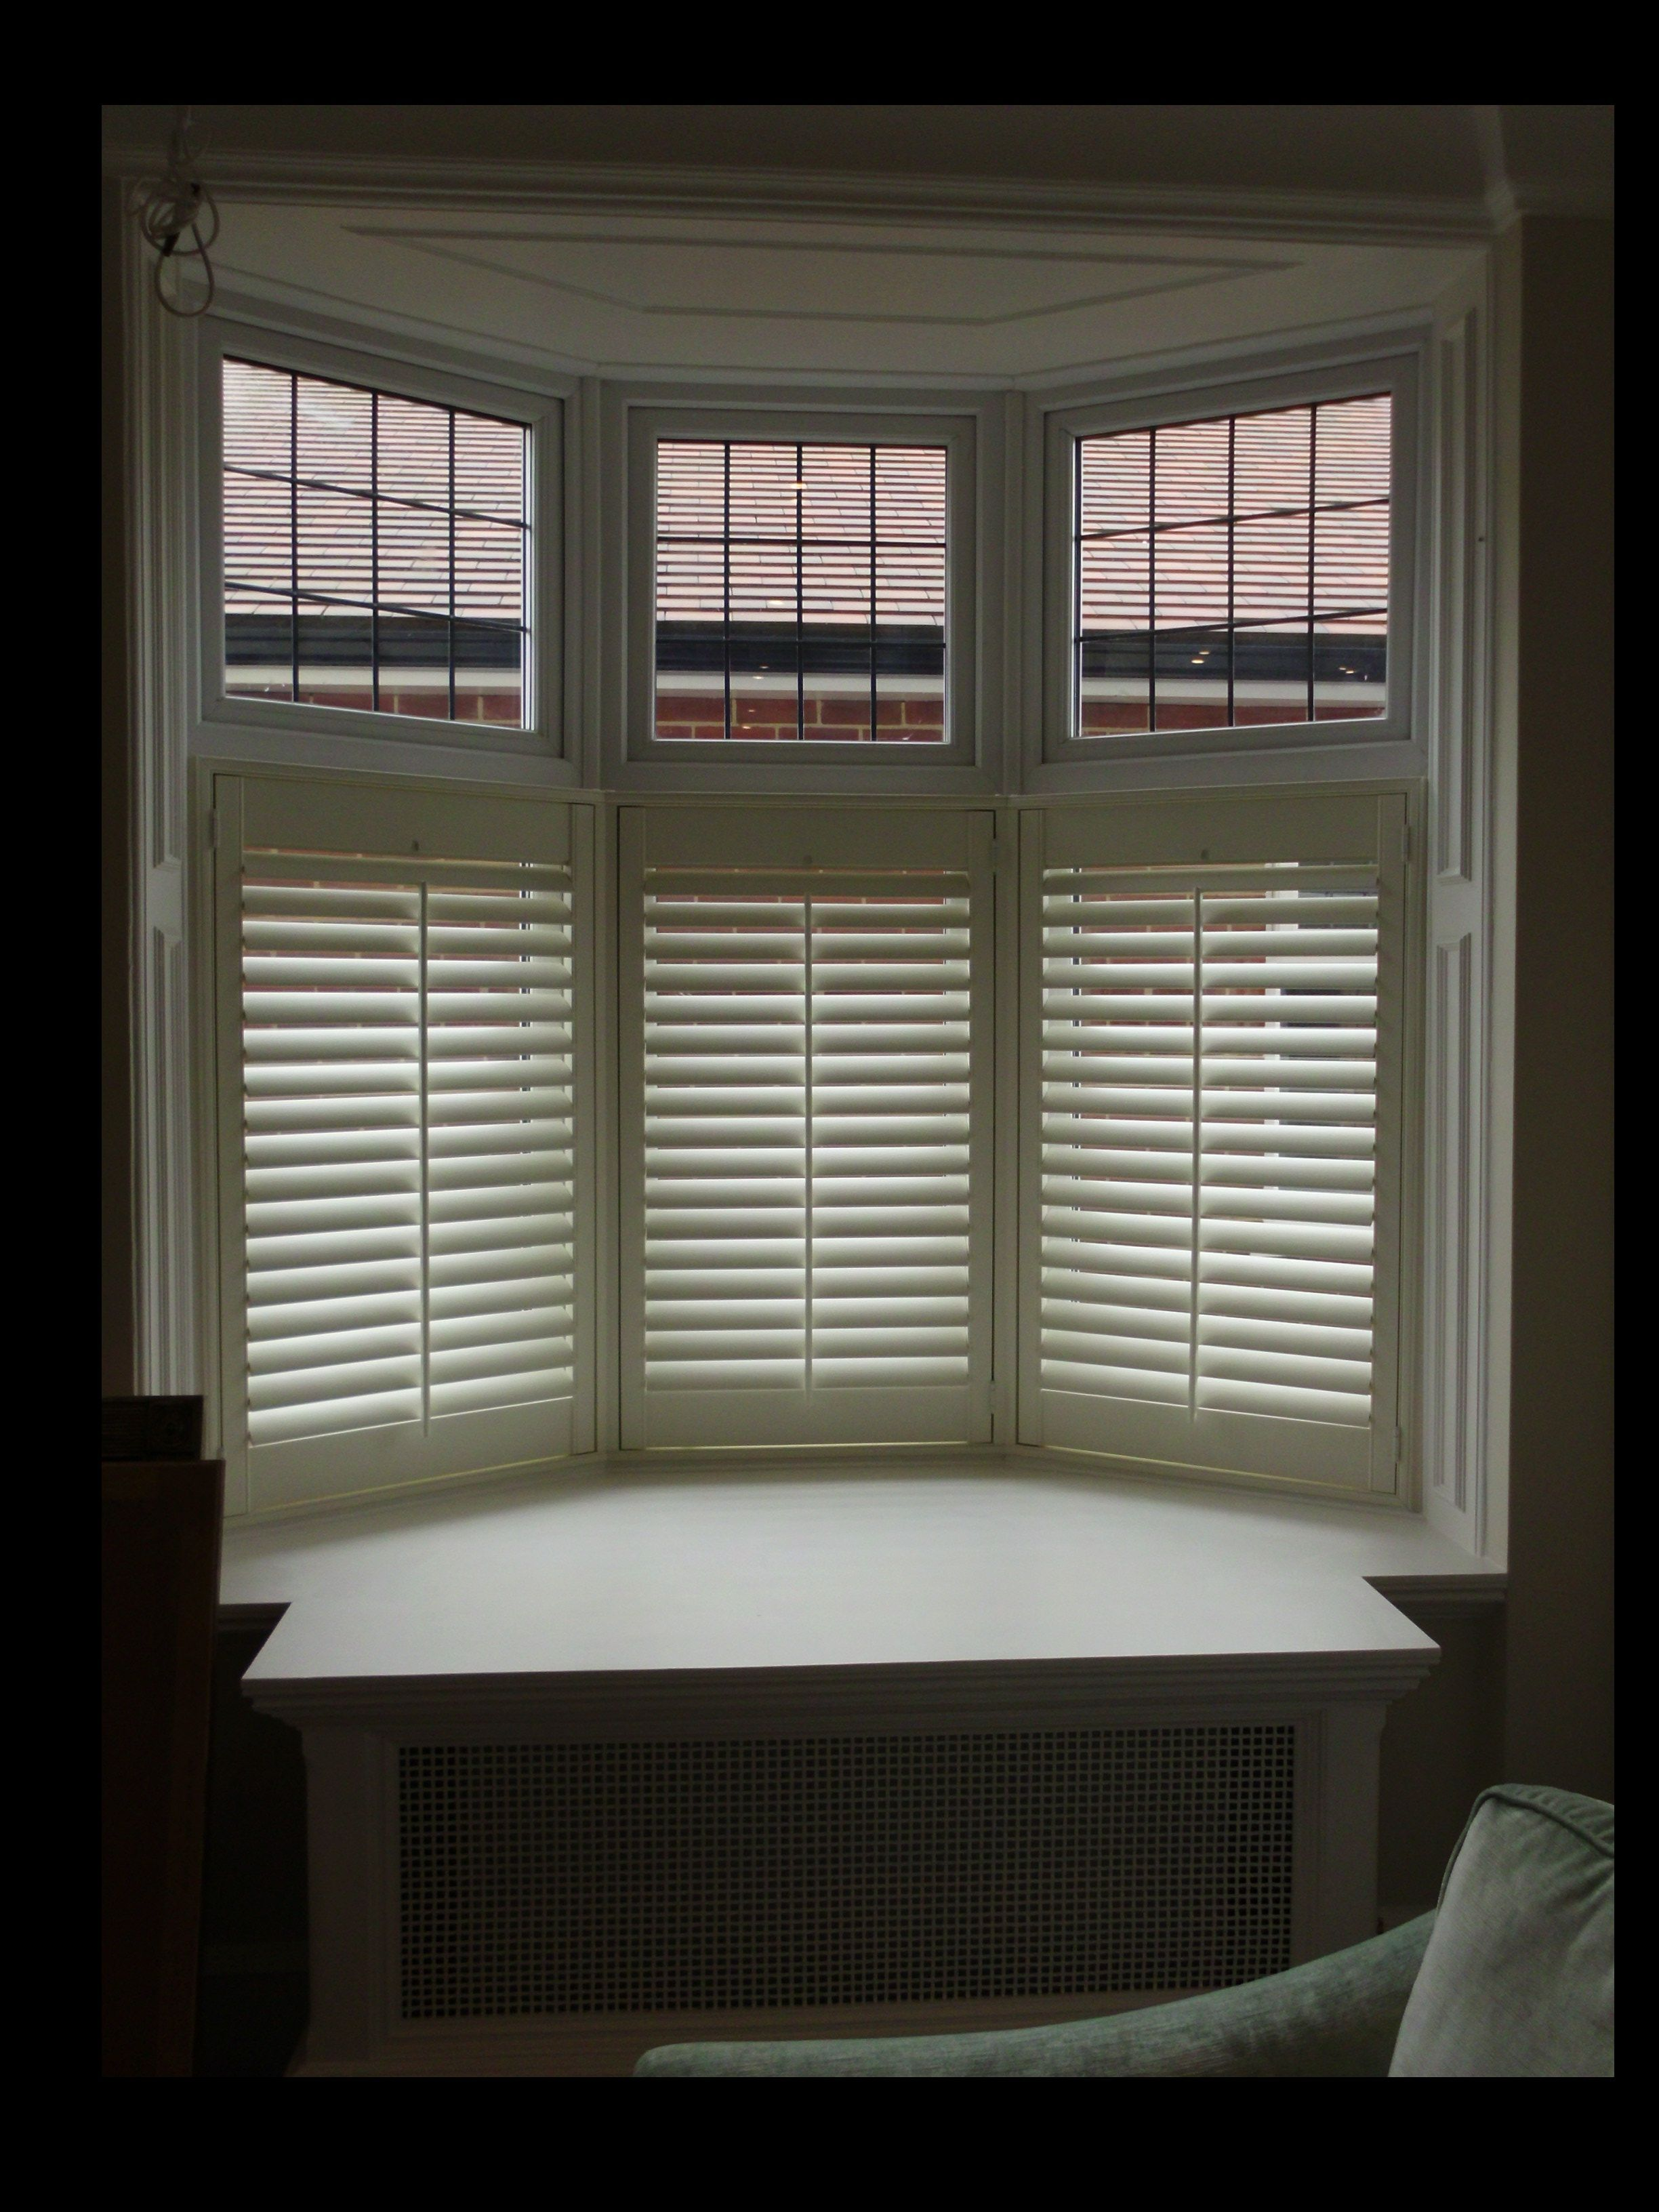 A Three Sided Bay Window With Cafe Style Shutters And Centre Tilt Rods Cafe Style Shutters Cafe Style Bay Window